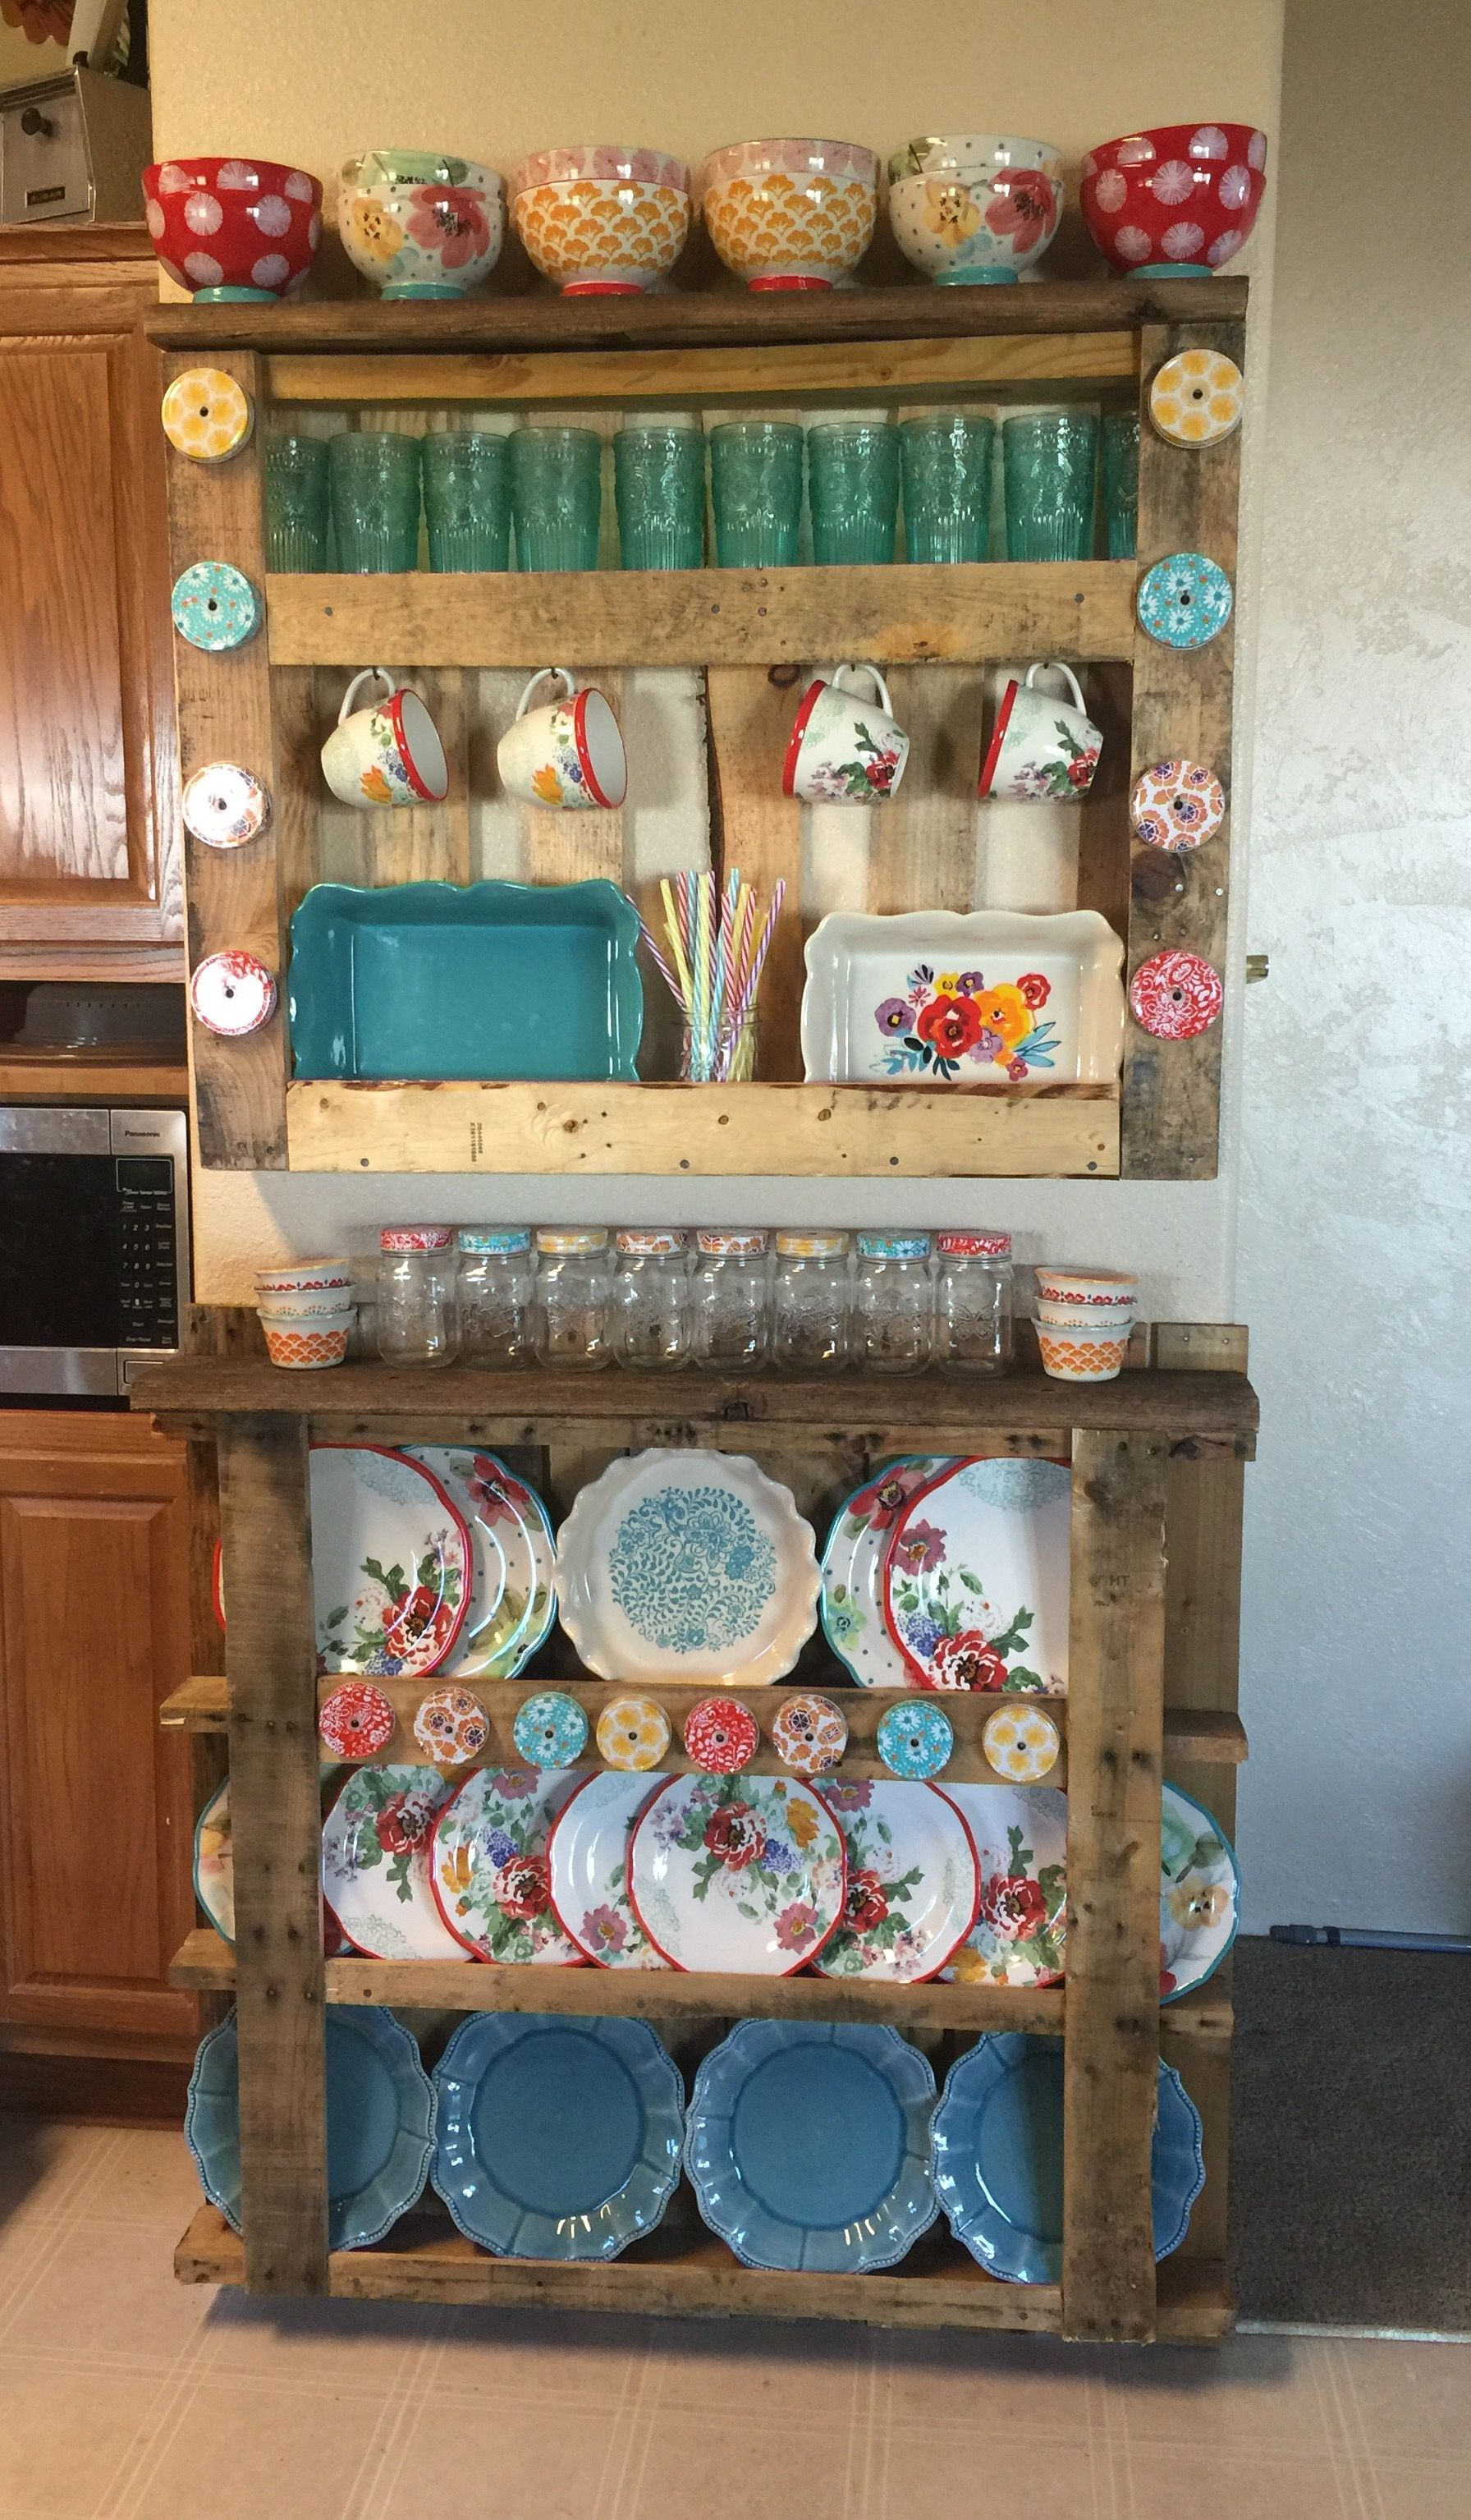 Pin By Gloria Shafer On Pioneer Women Dishes Pioneer Woman Kitchen Decor Pioneer Woman Kitchen Country Kitchen Decor